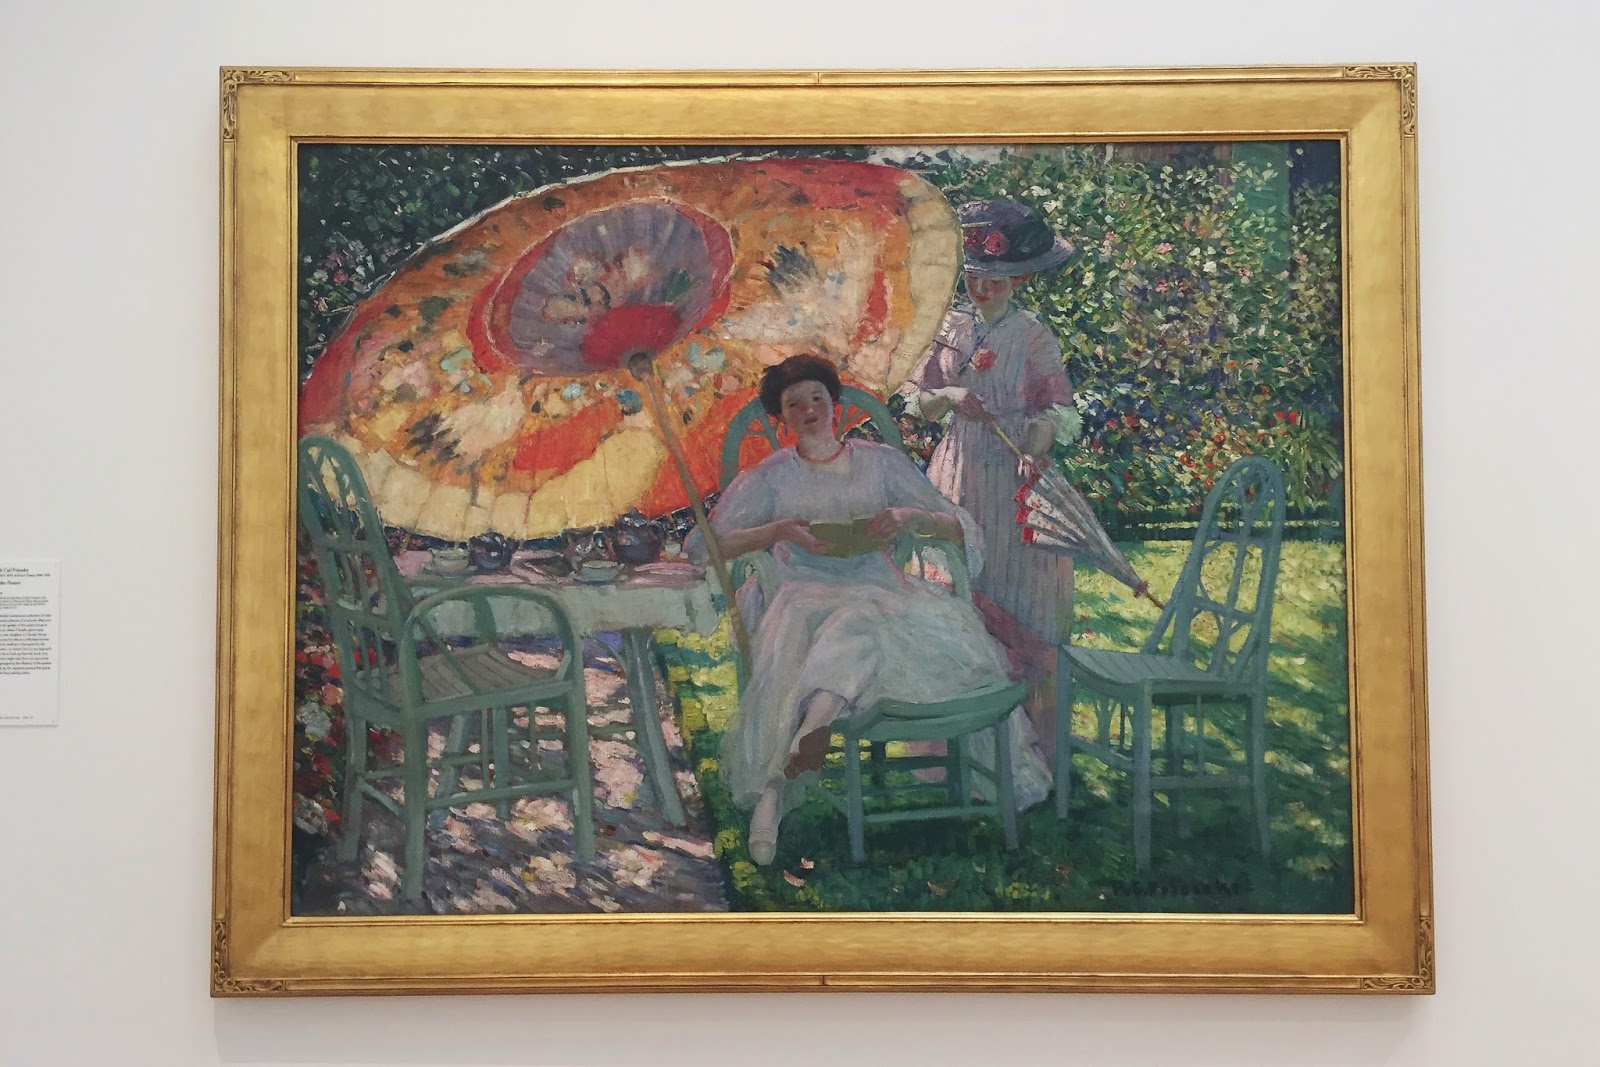 The Garden Parasol, painting, oil on canvas, Frederick Carl Frieseke, North Carolina Museum of Art, NCMA, Raleigh, North Carolina, things to do in Raleigh, things to go in North Carolina, art, art museum